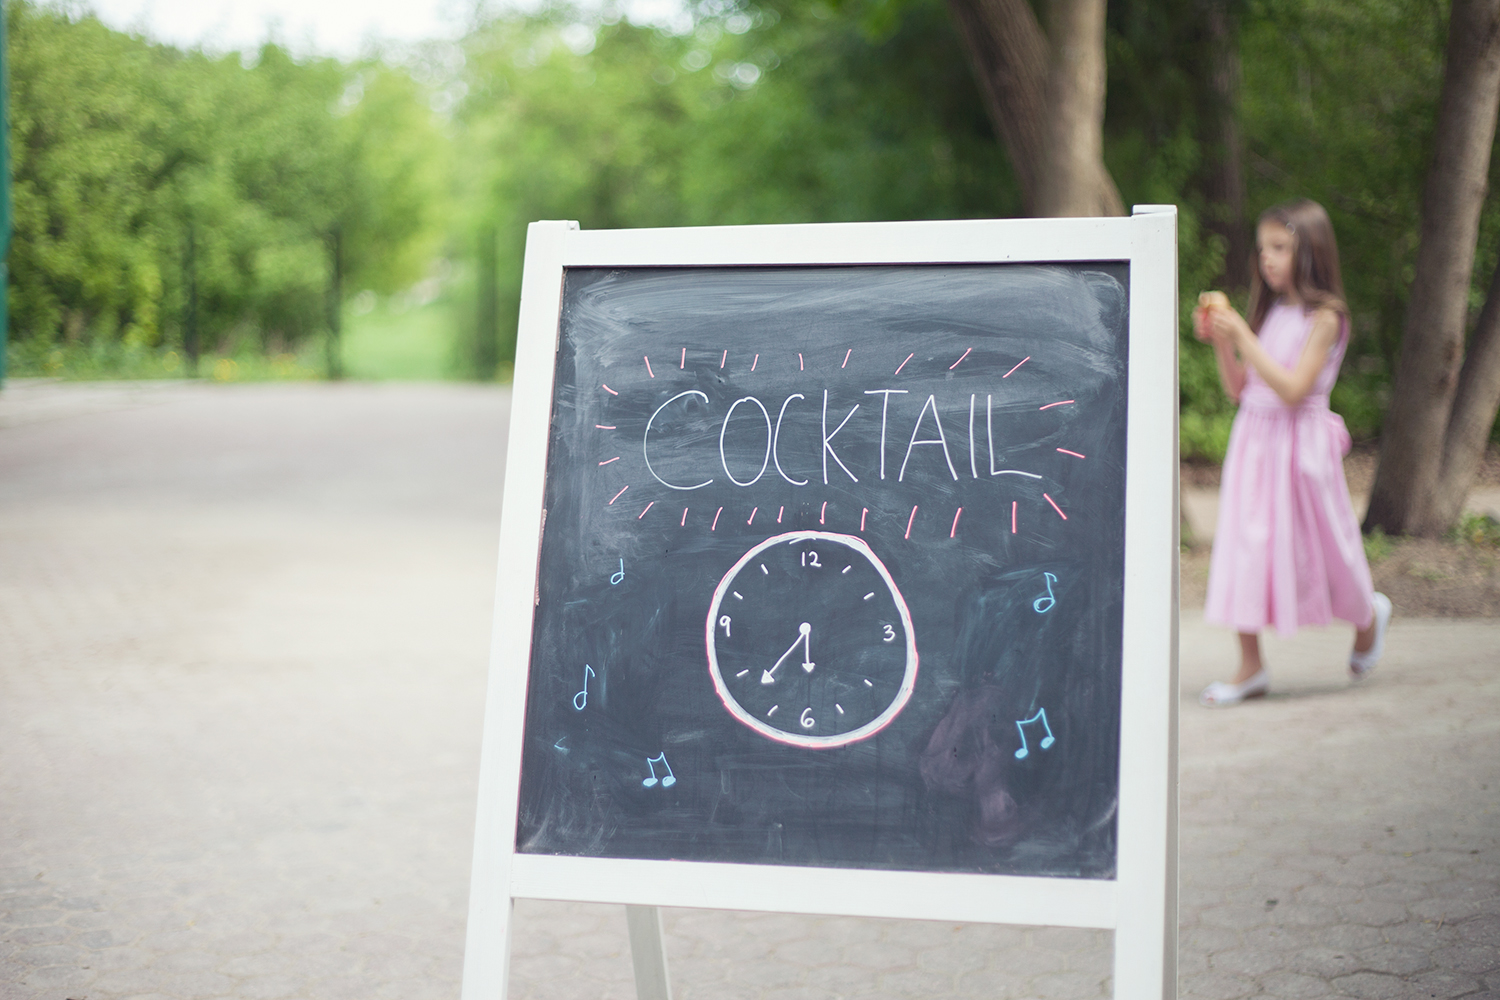 cocktail sign outdoors